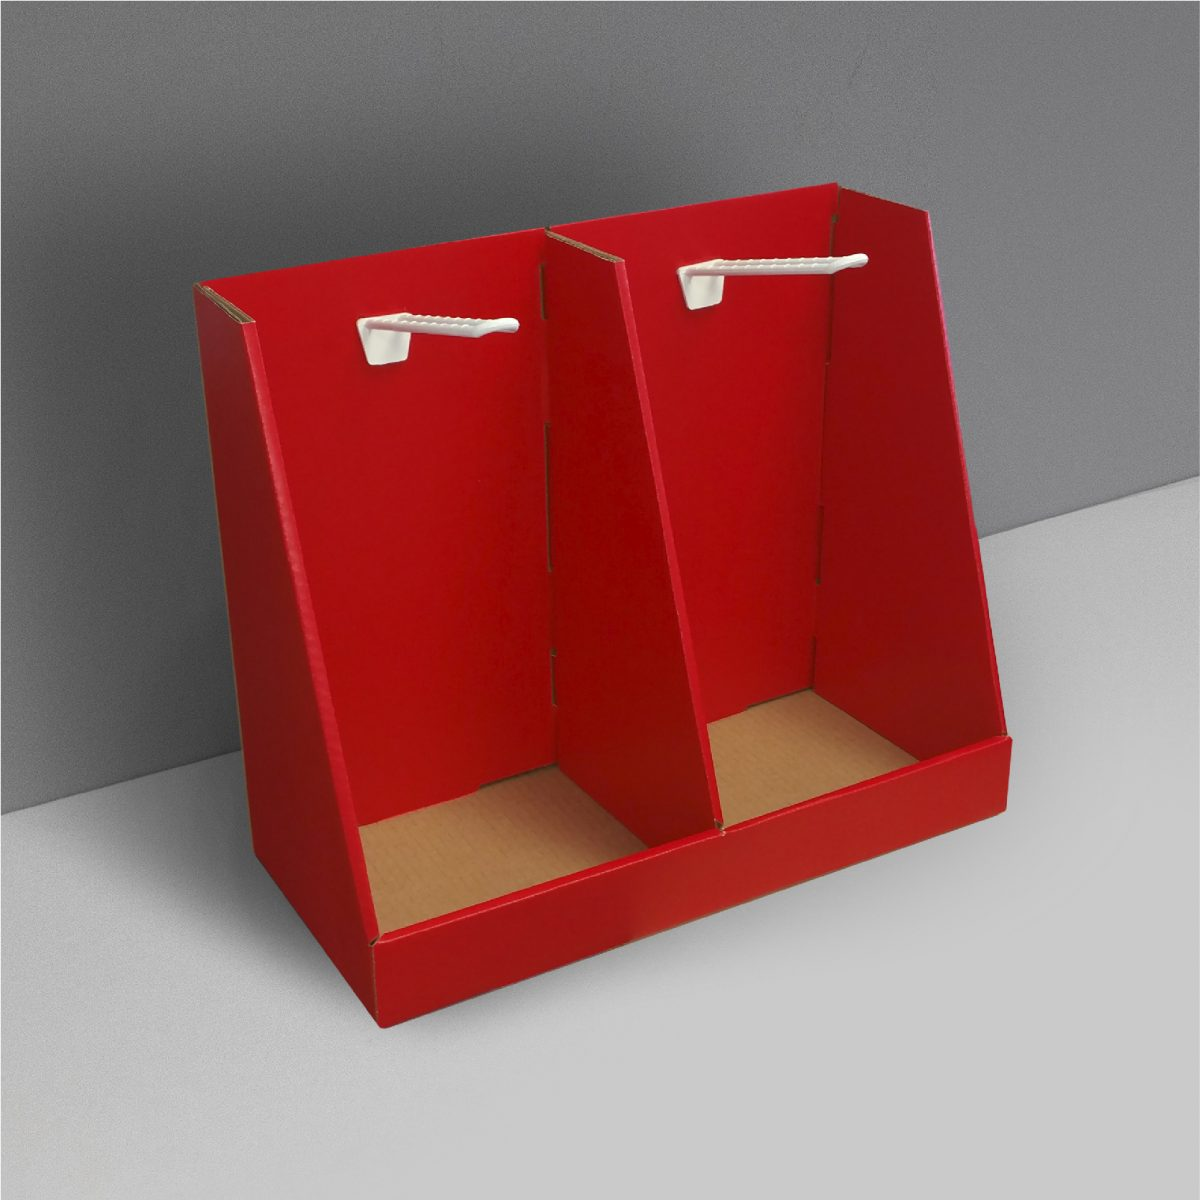 Cardboard counter display with pegs (1 each sides) and separator in the middle - red